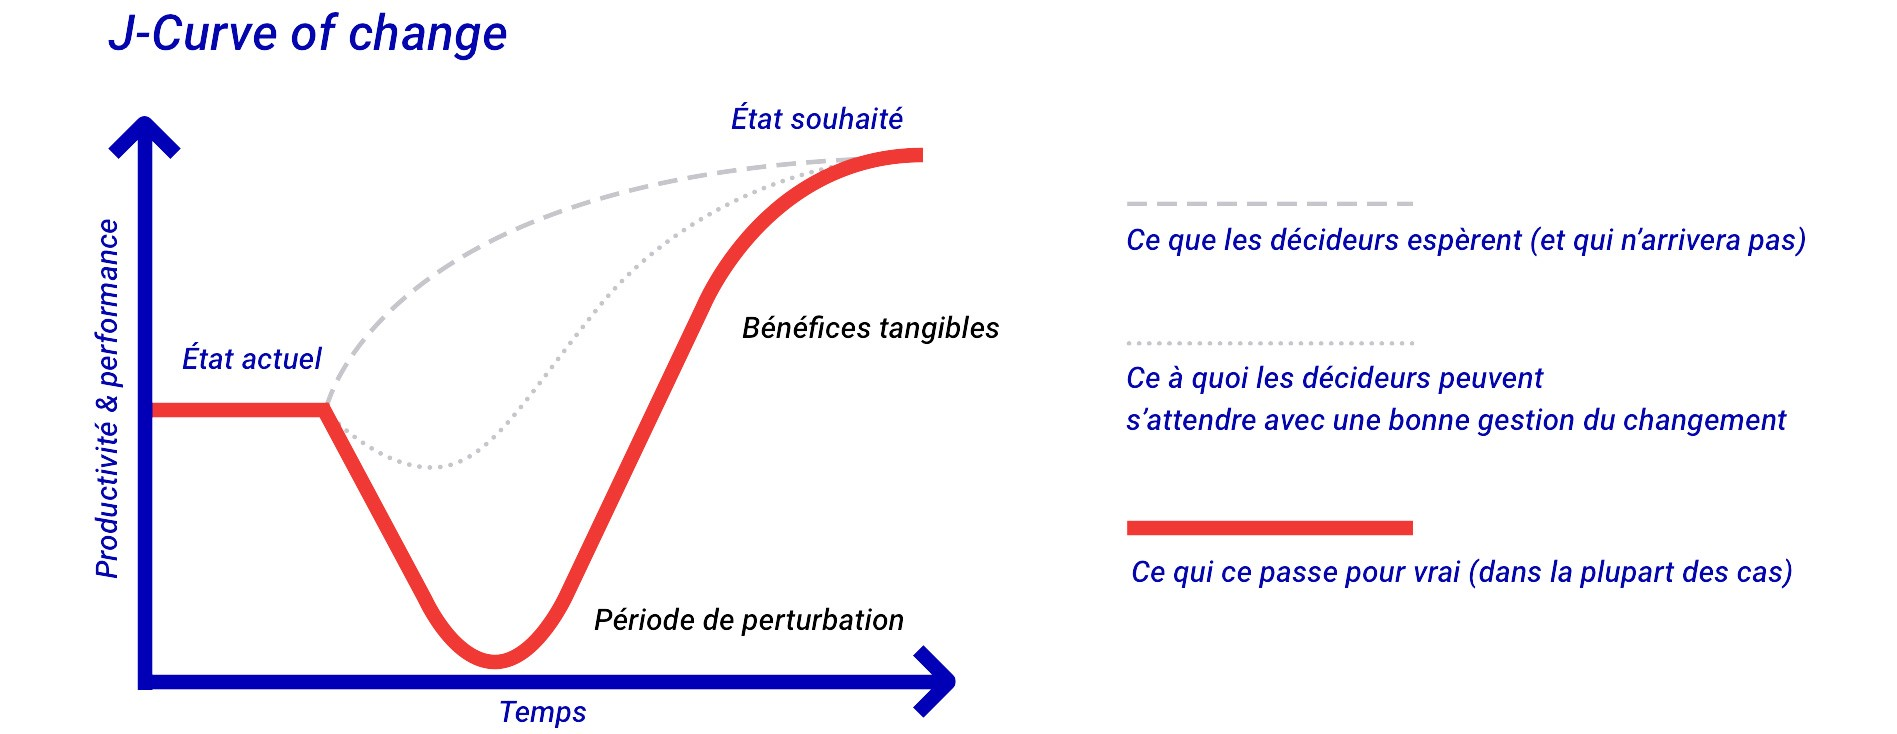 Illustration de la J-Curve of change